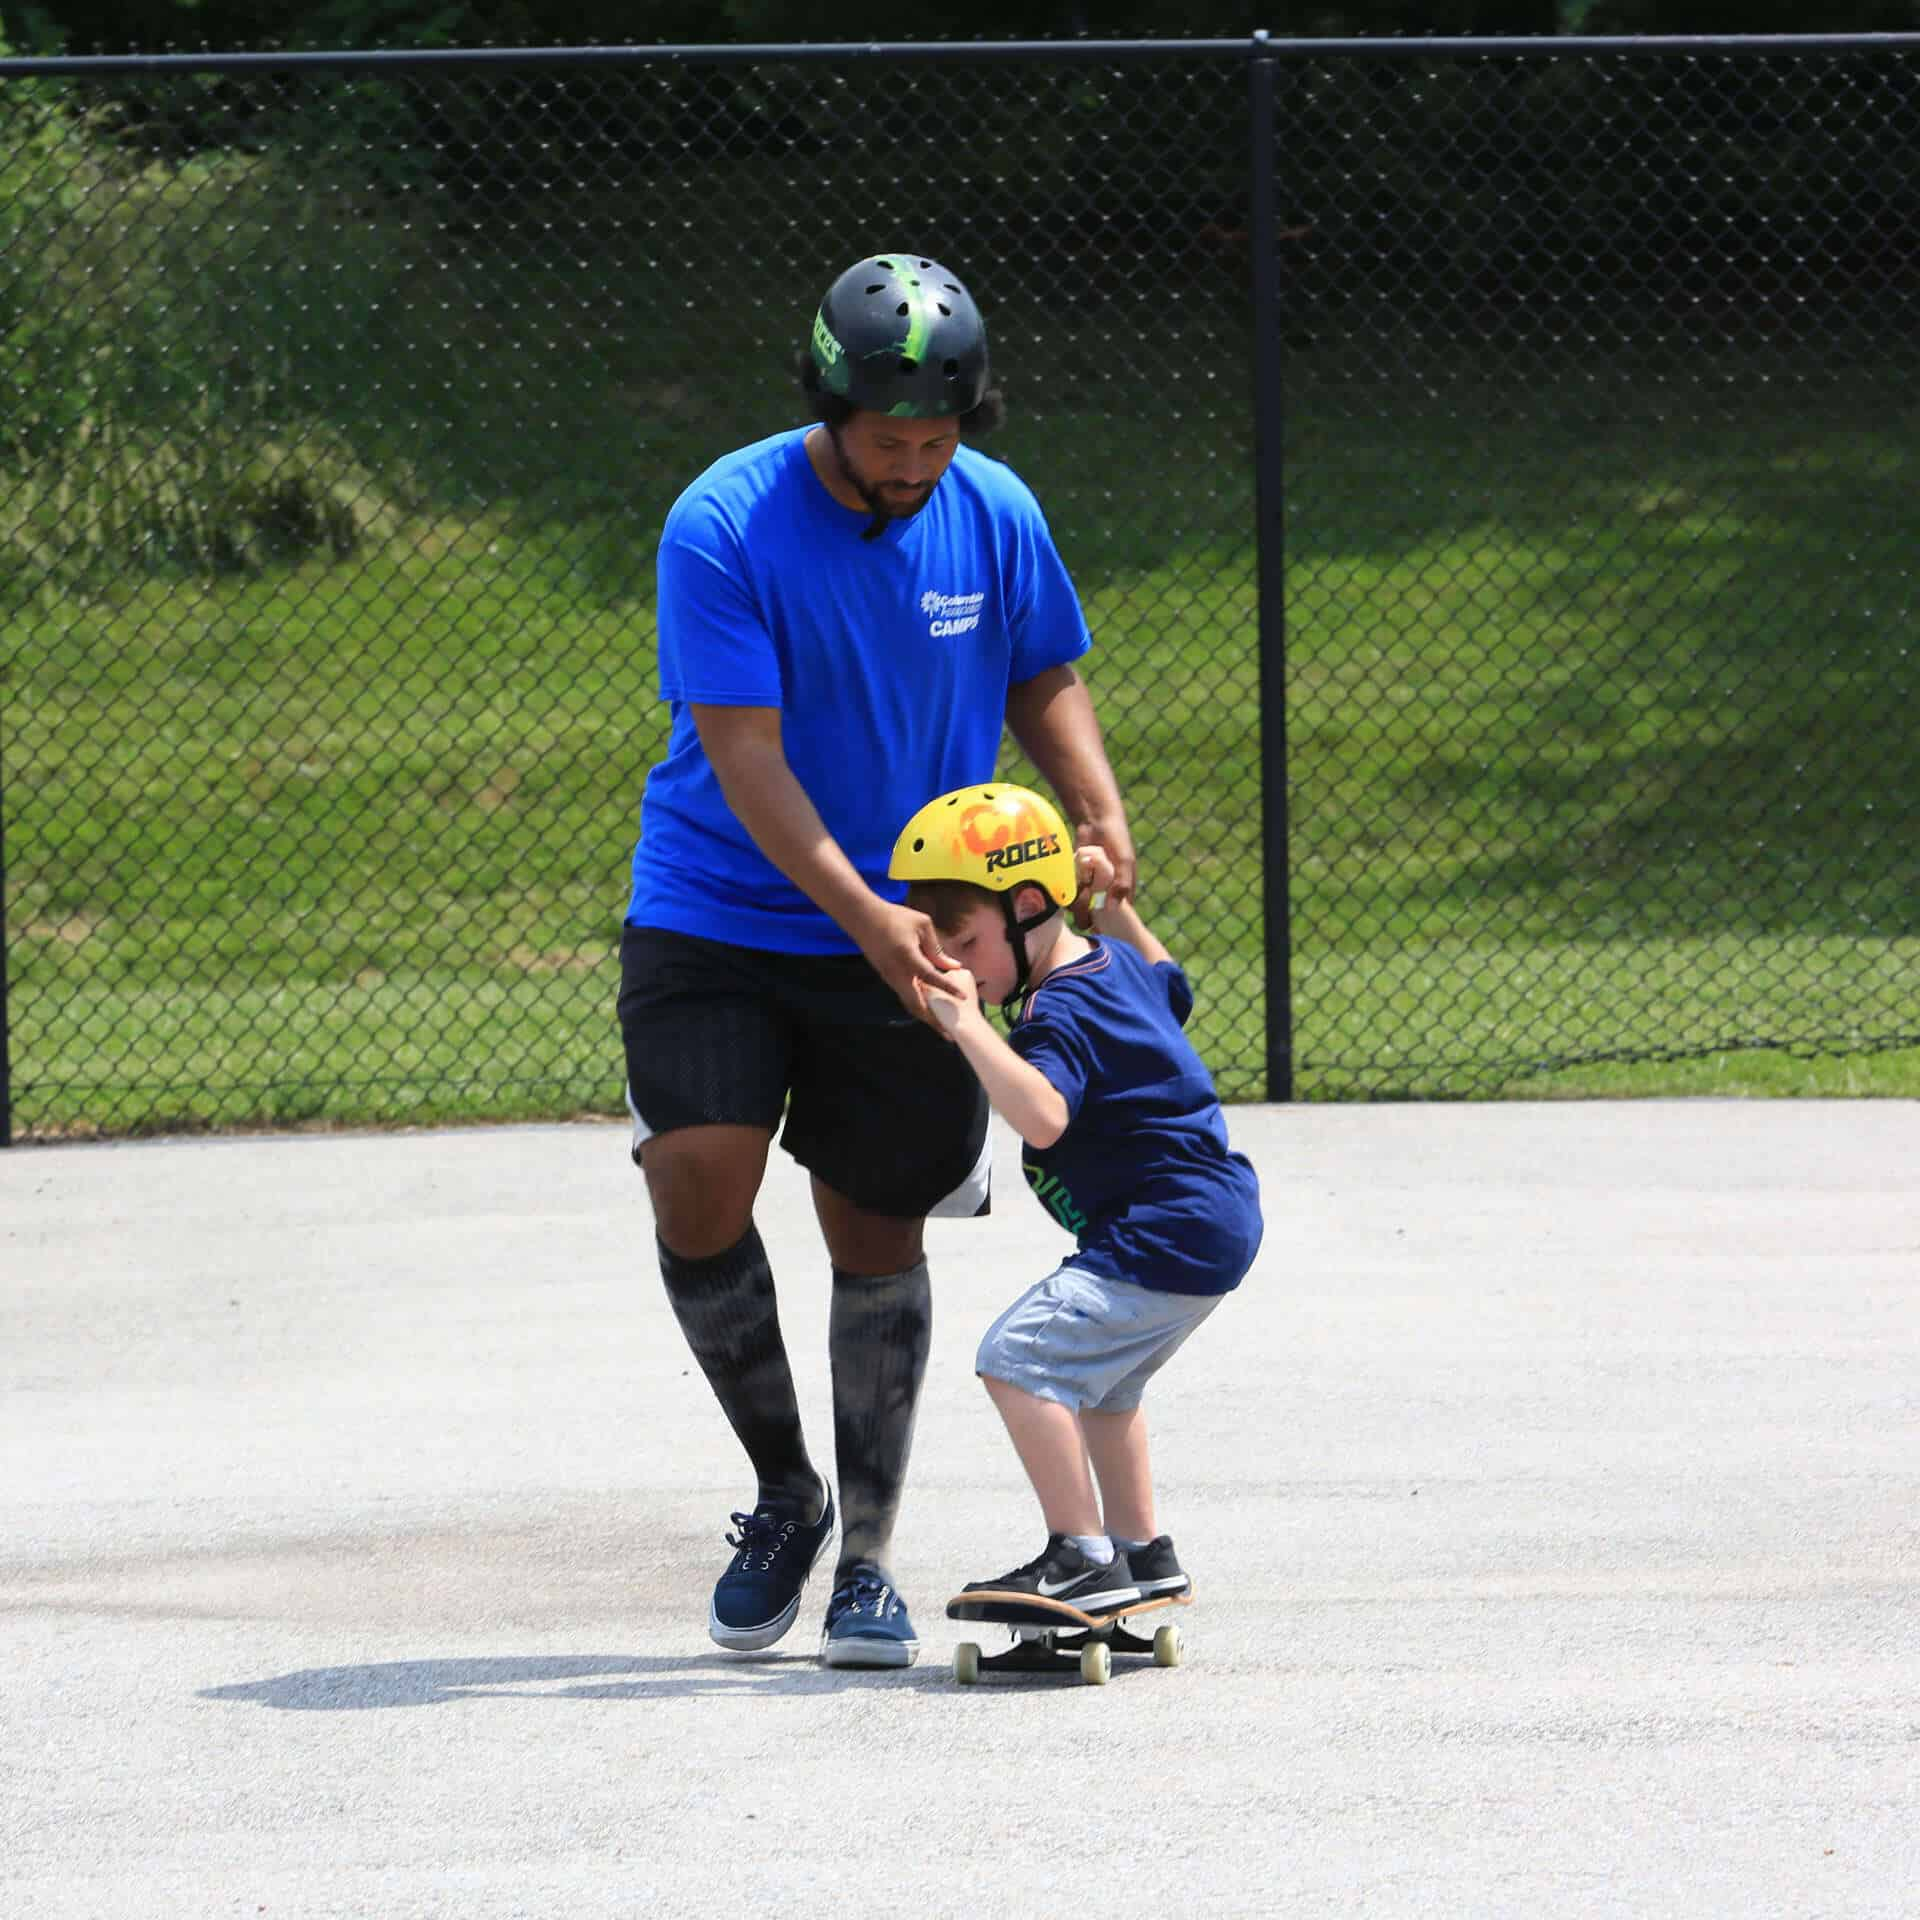 skateboard camp image